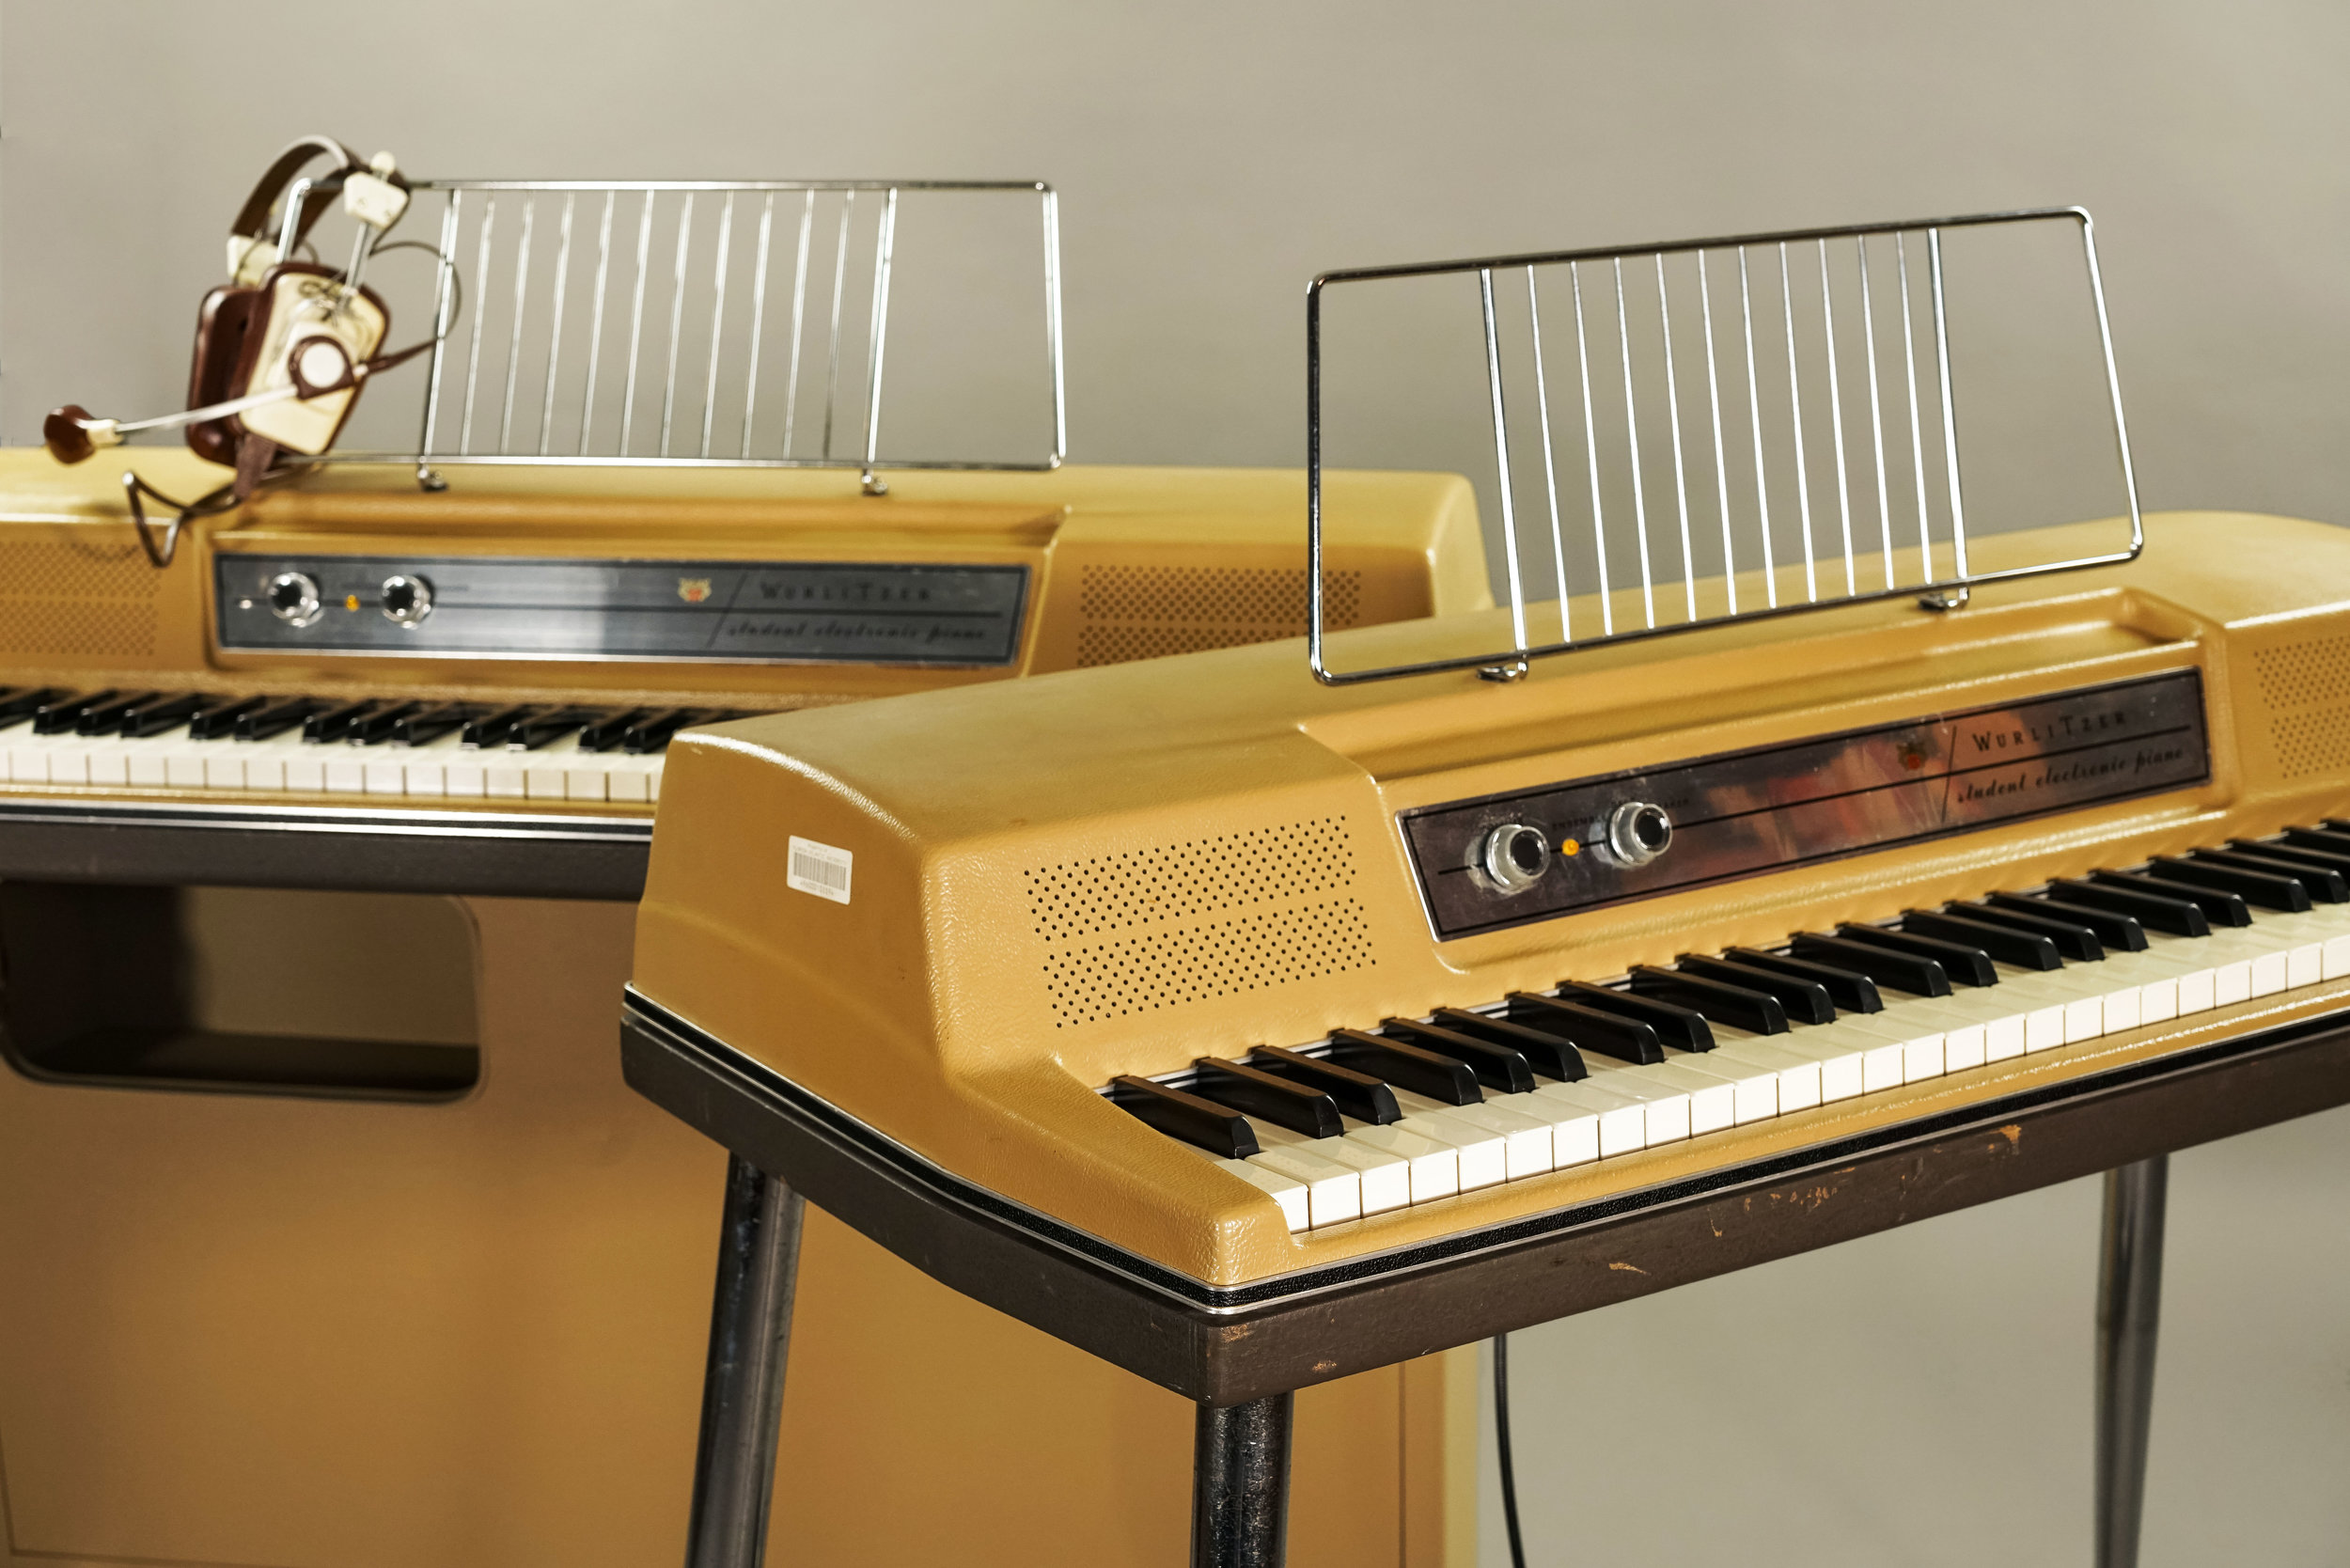 A vintage Wurlitzer 206, and a version of the same keyboard on legs.